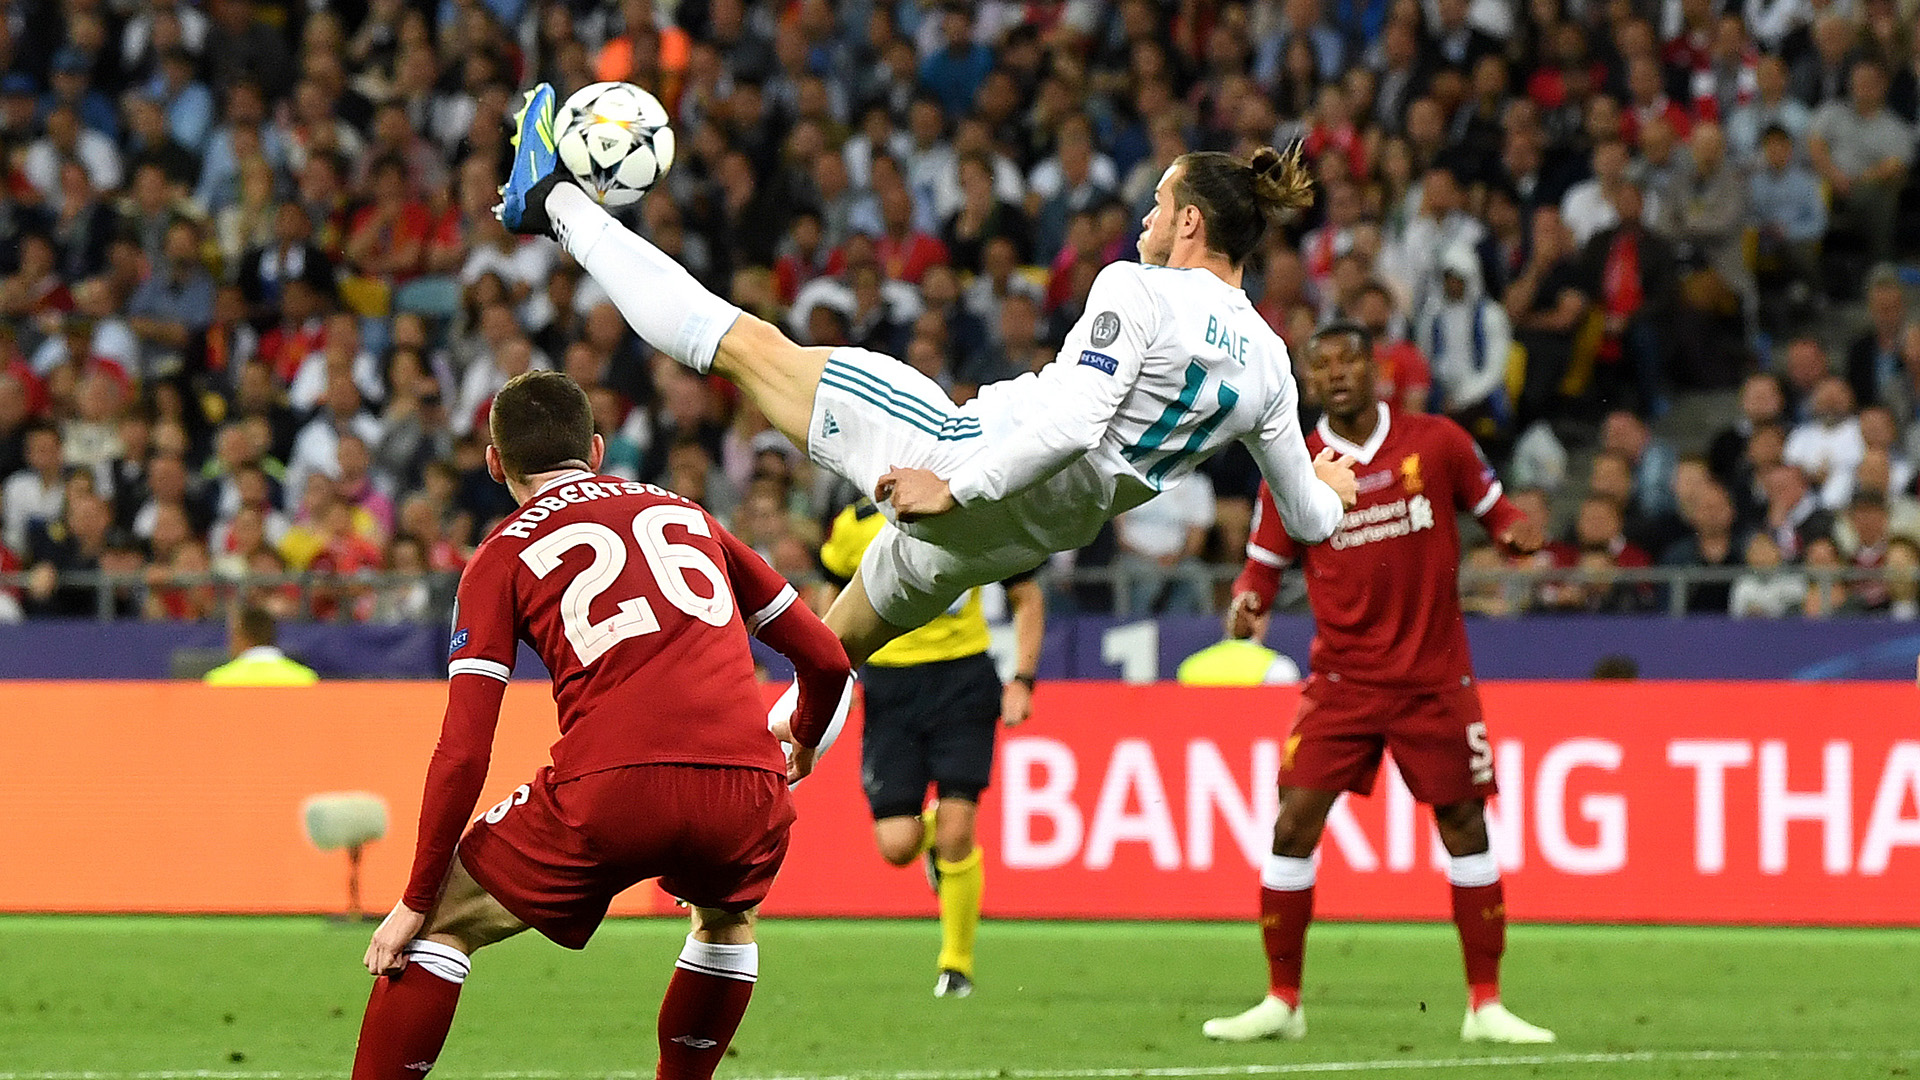 Gareth Bale overhead kick Real Madrid Liverpool Champions League final 260518